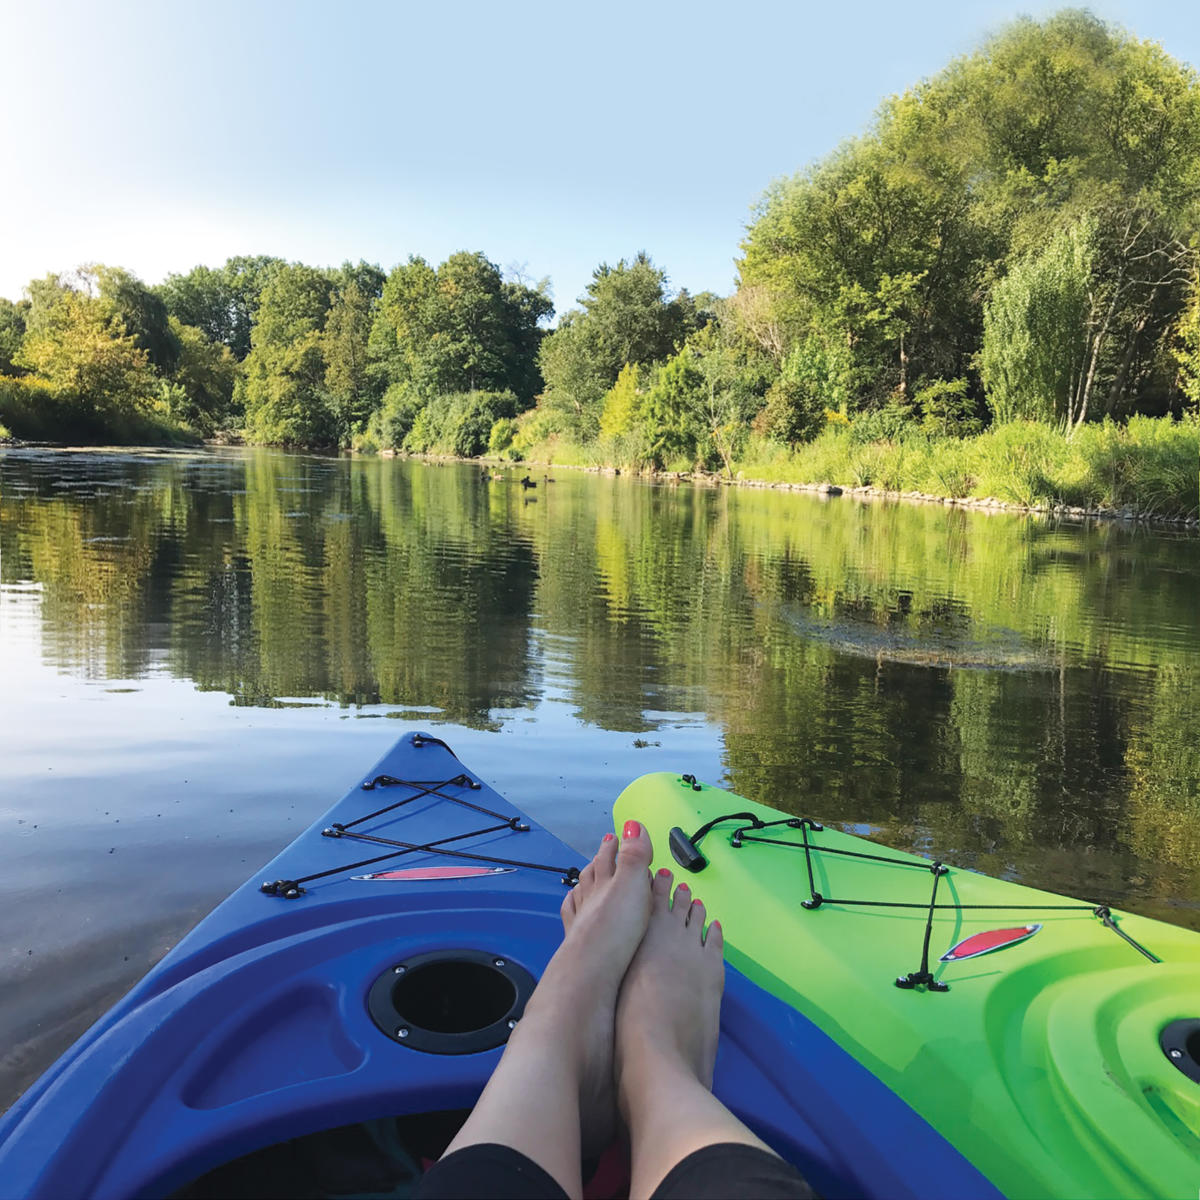 Kayaking in Waterfall Glen Forest Preserve in DuPage County